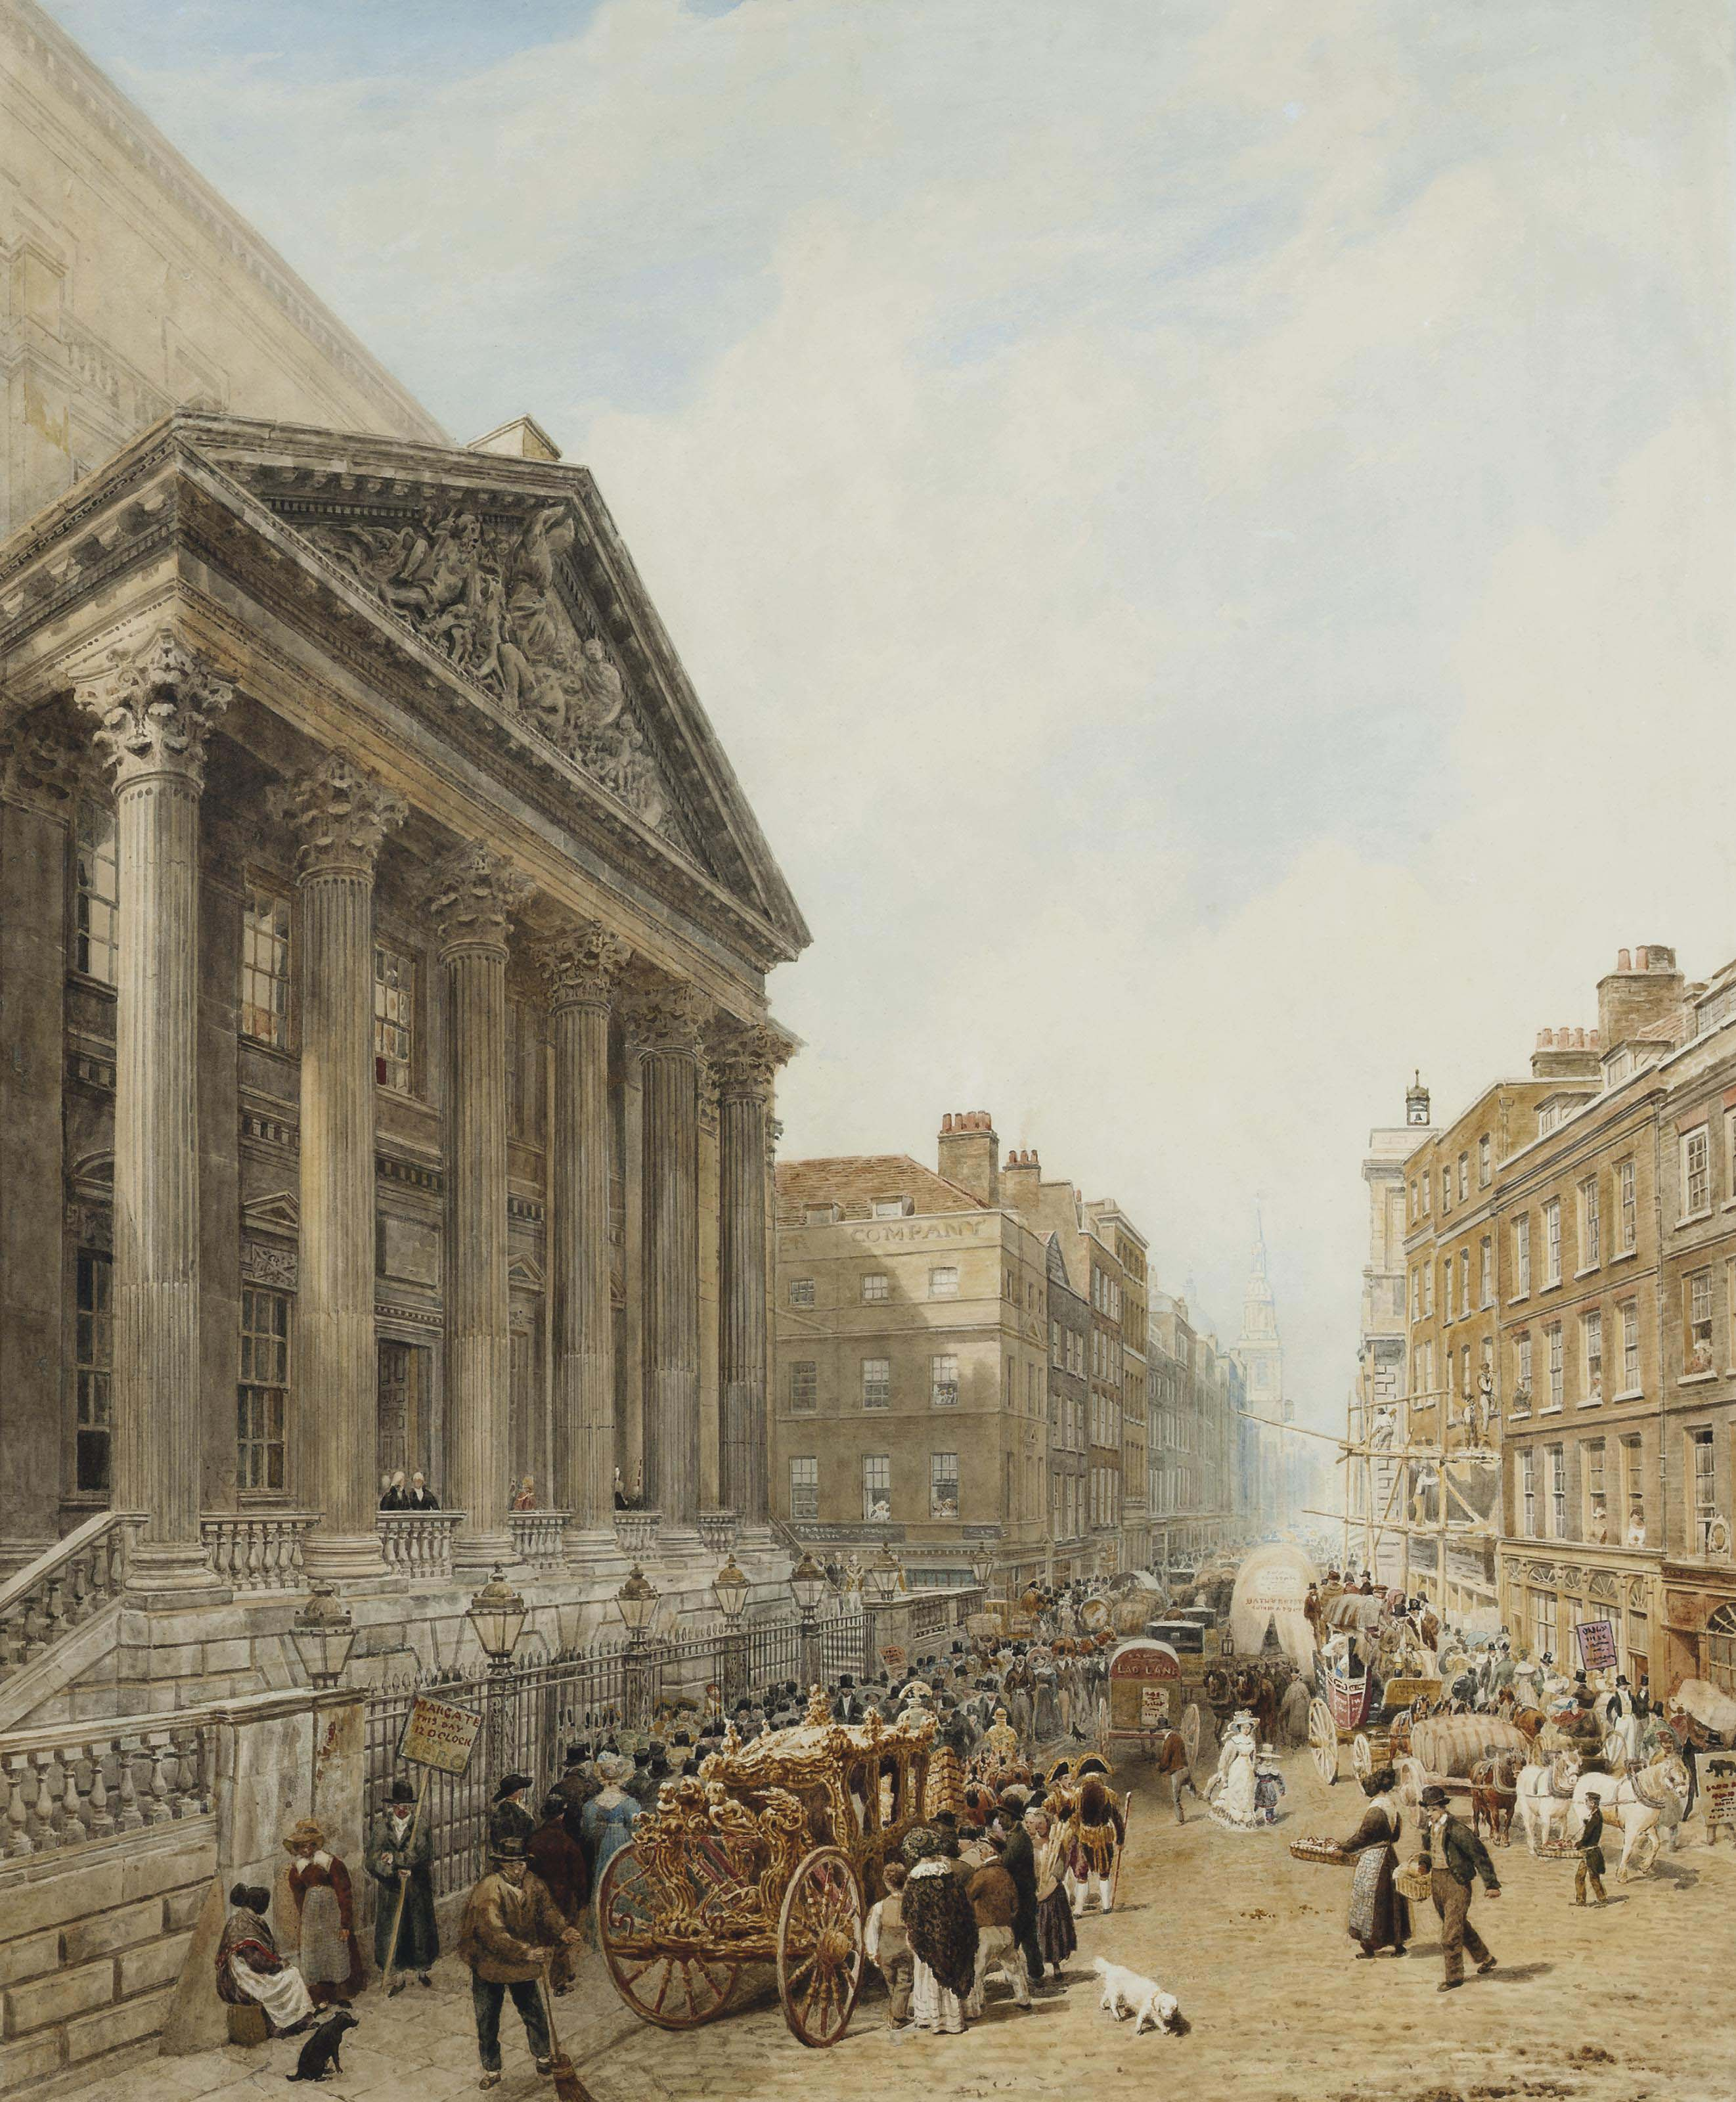 The Mansion House from Poultry looking down Cheapside towards St-Mary-le-Bow with the Lord Mayor's coach in the foreground